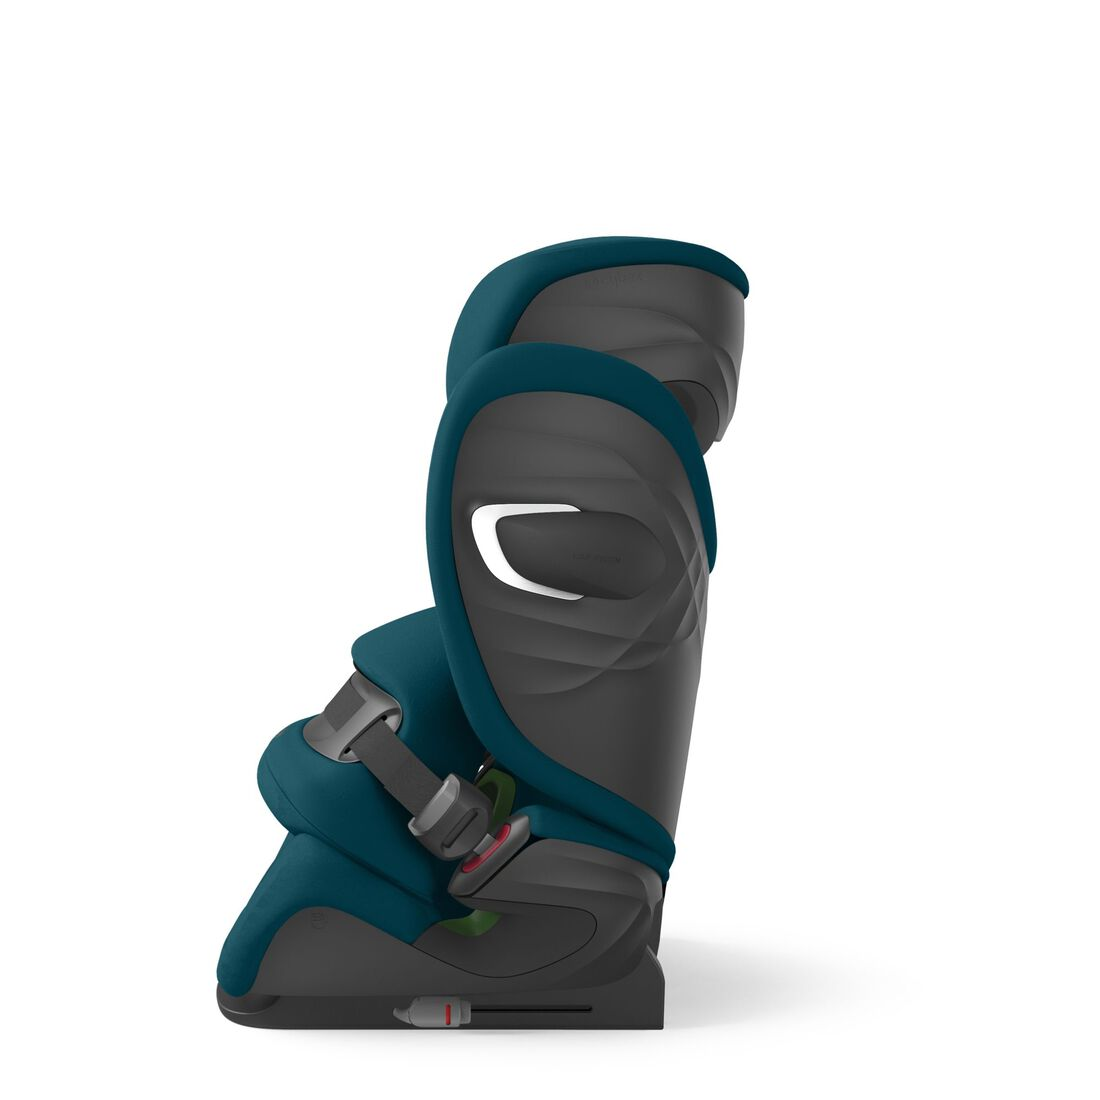 CYBEX Pallas G i-Size - River Blue in River Blue large image number 3